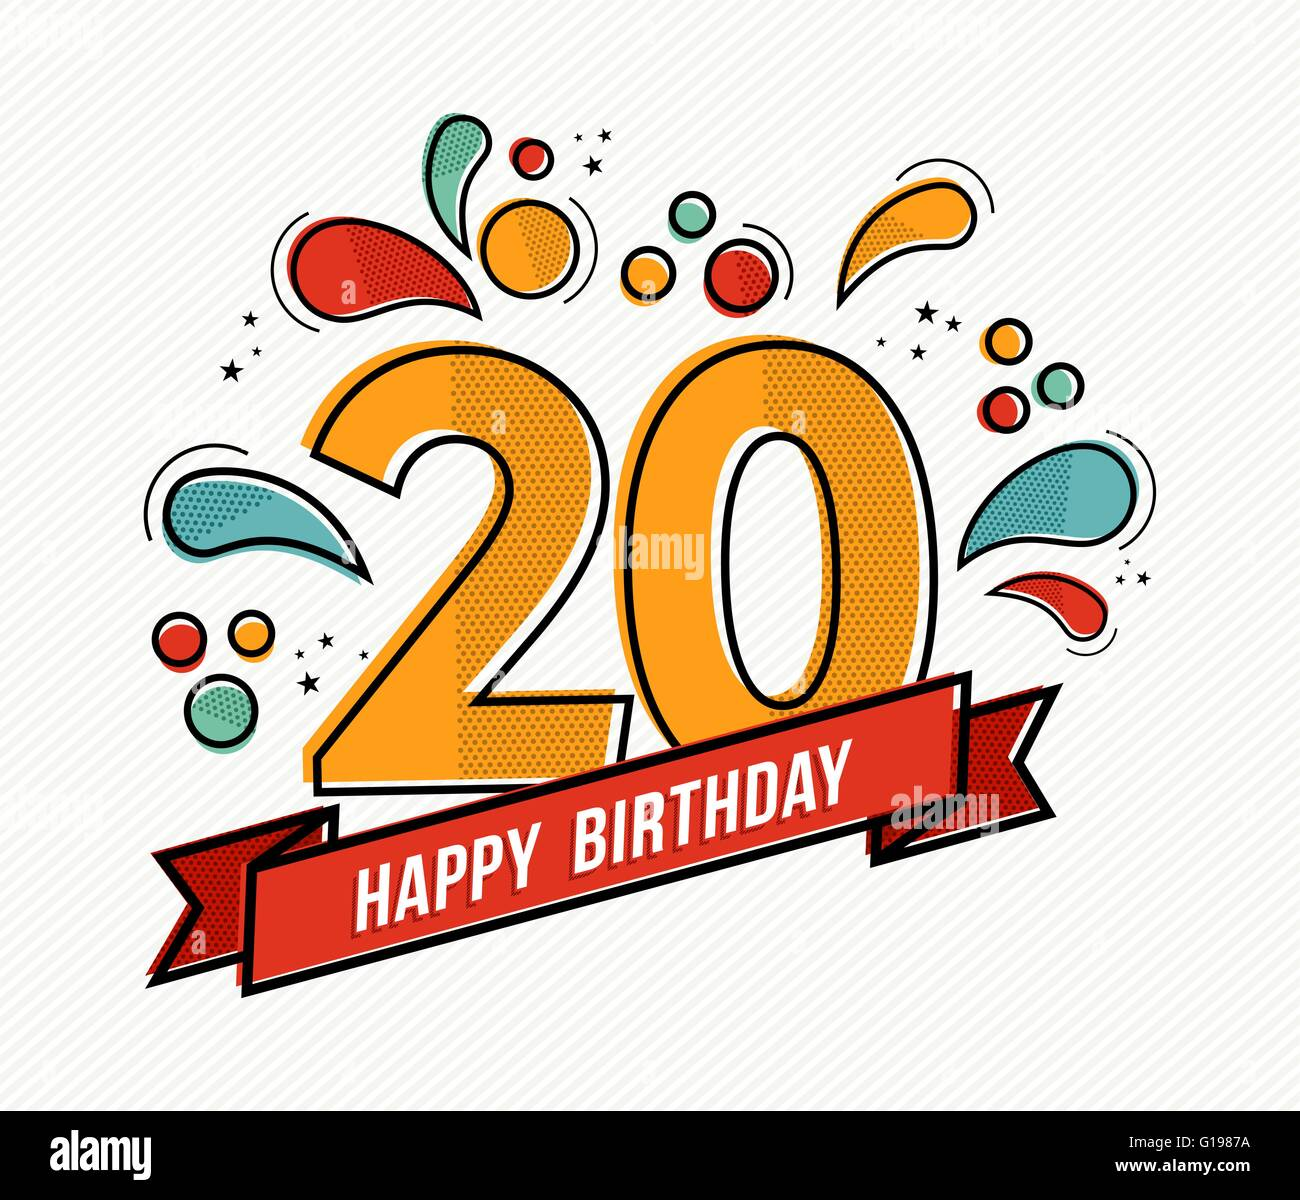 Happy birthday number 20 greeting card for twenty year in modern happy birthday number 20 greeting card for twenty year in modern flat line art with colorful geometric shapes bookmarktalkfo Choice Image